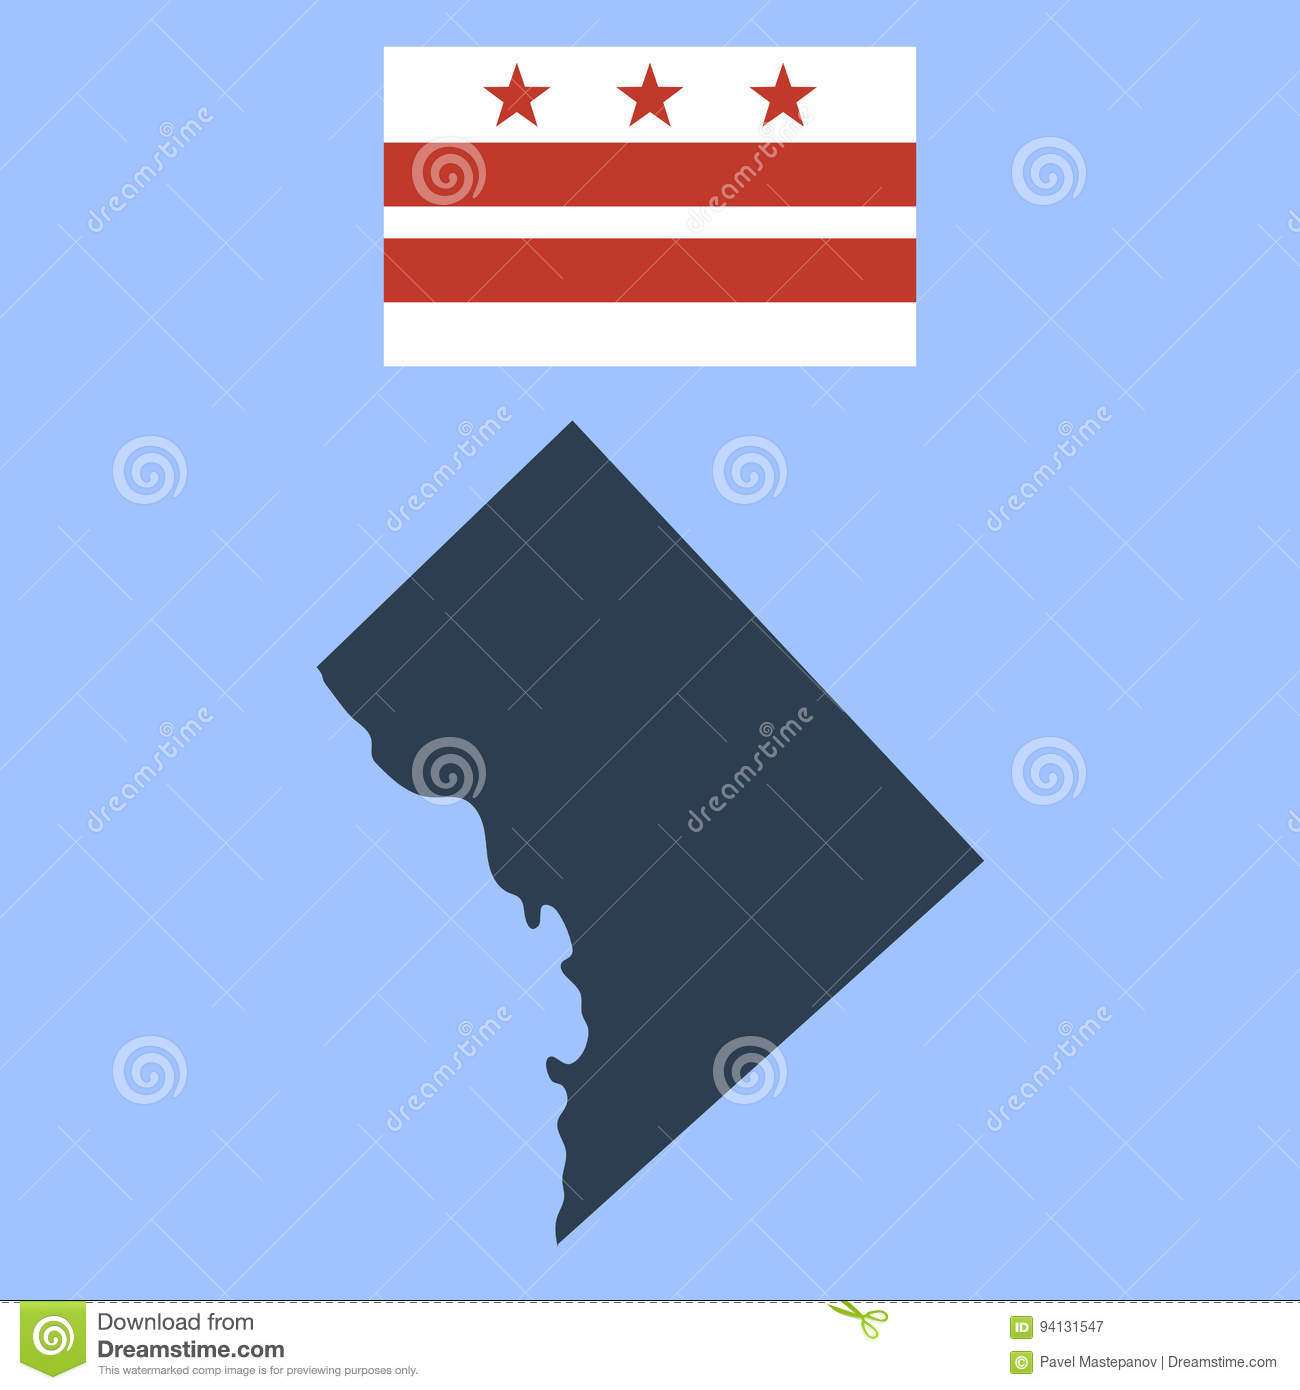 Flag Of The District Of Columbia And Map Stock Vector - Illustration ...